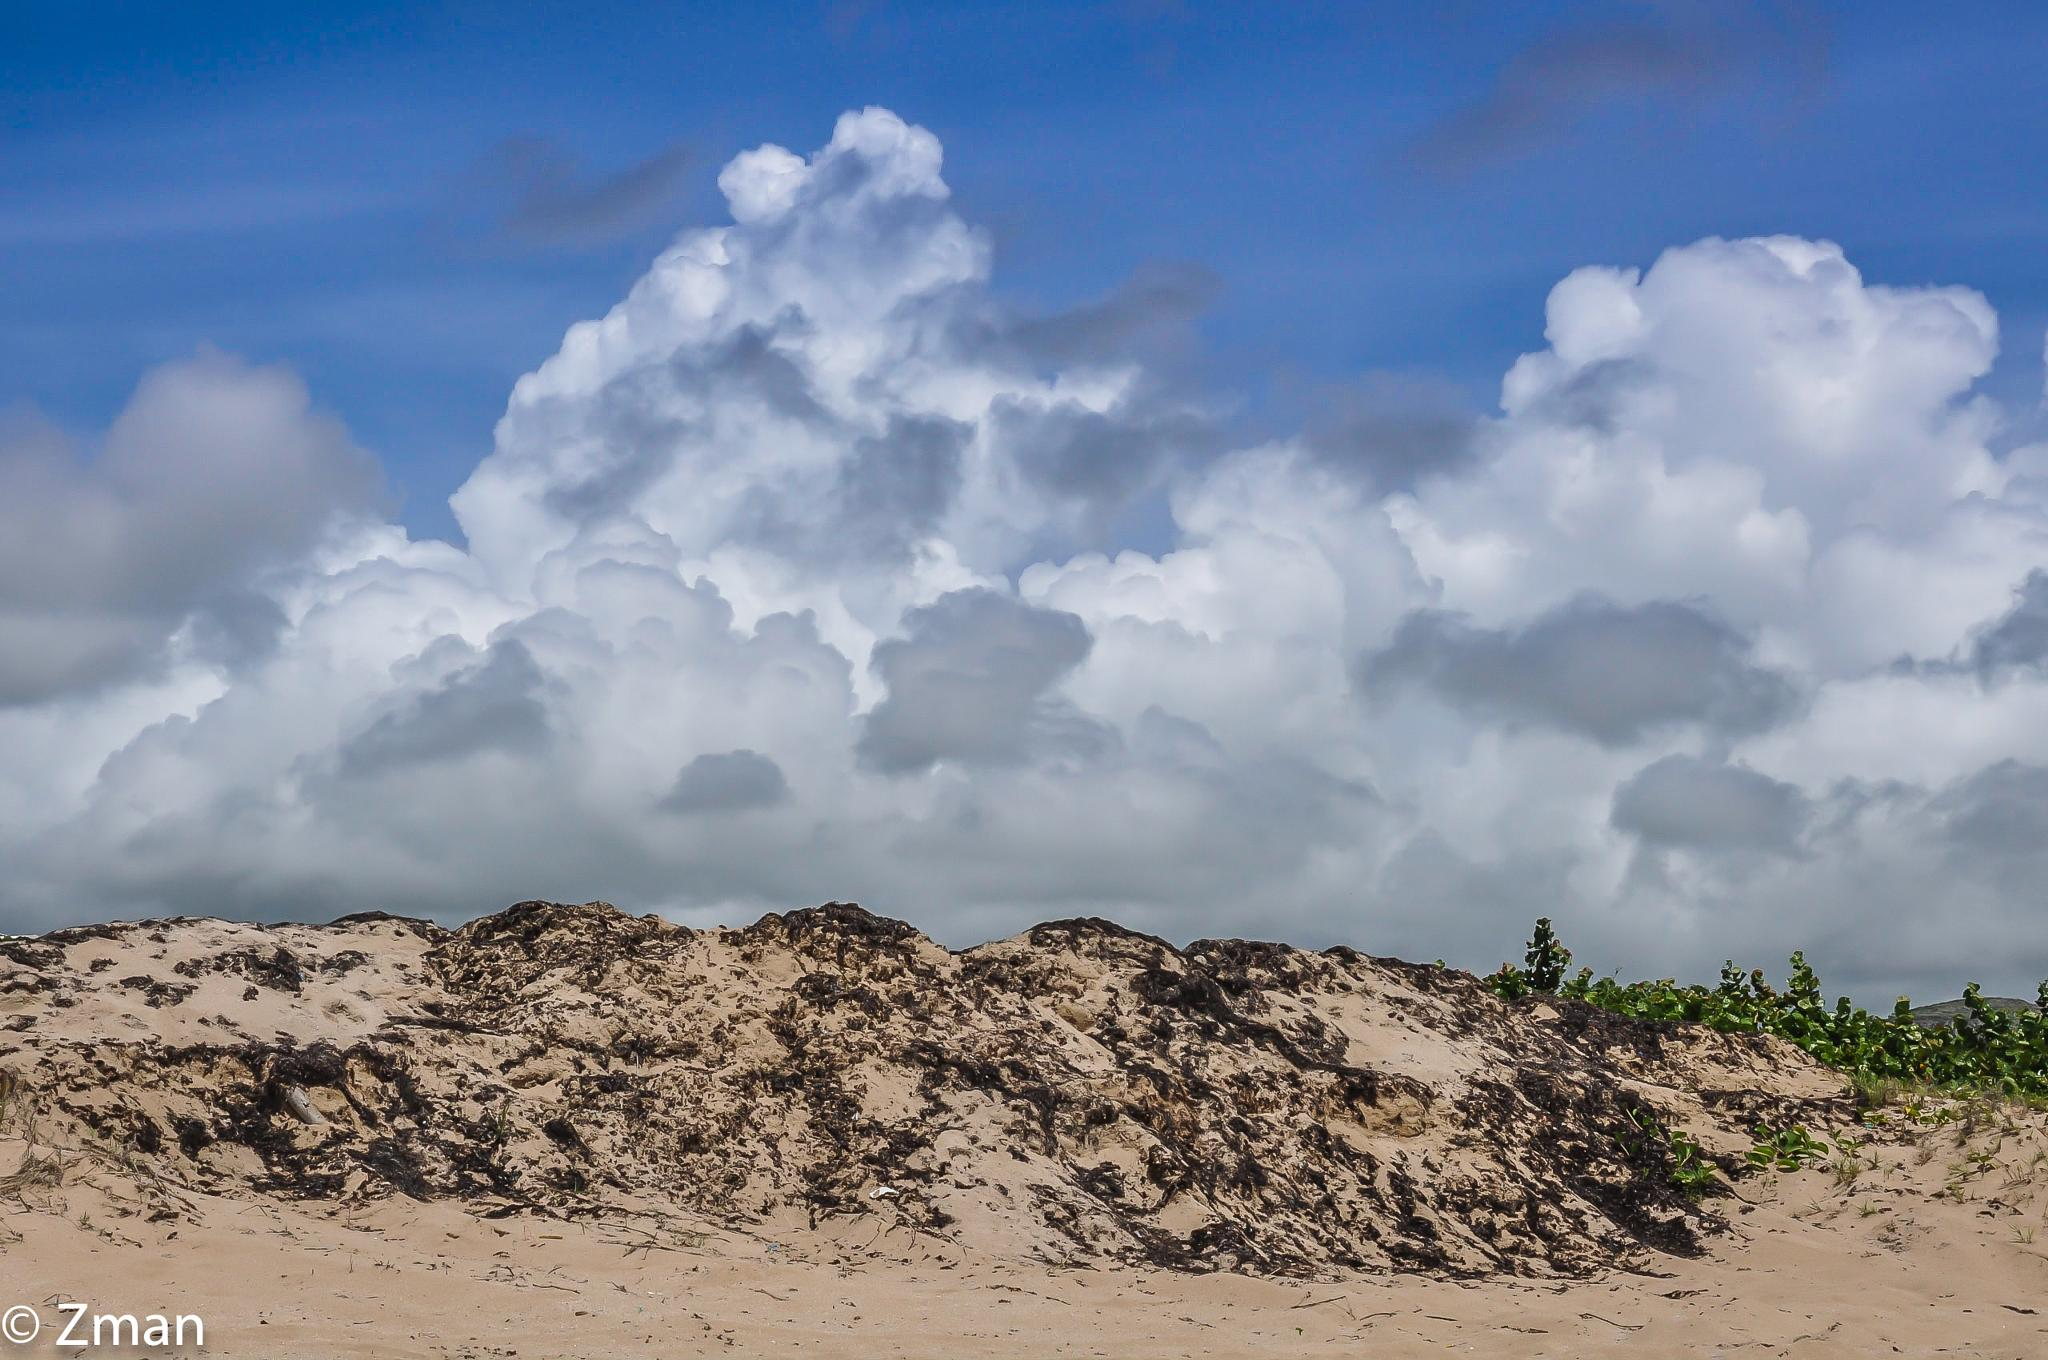 Sand and clouds by muhammad.nasser.963